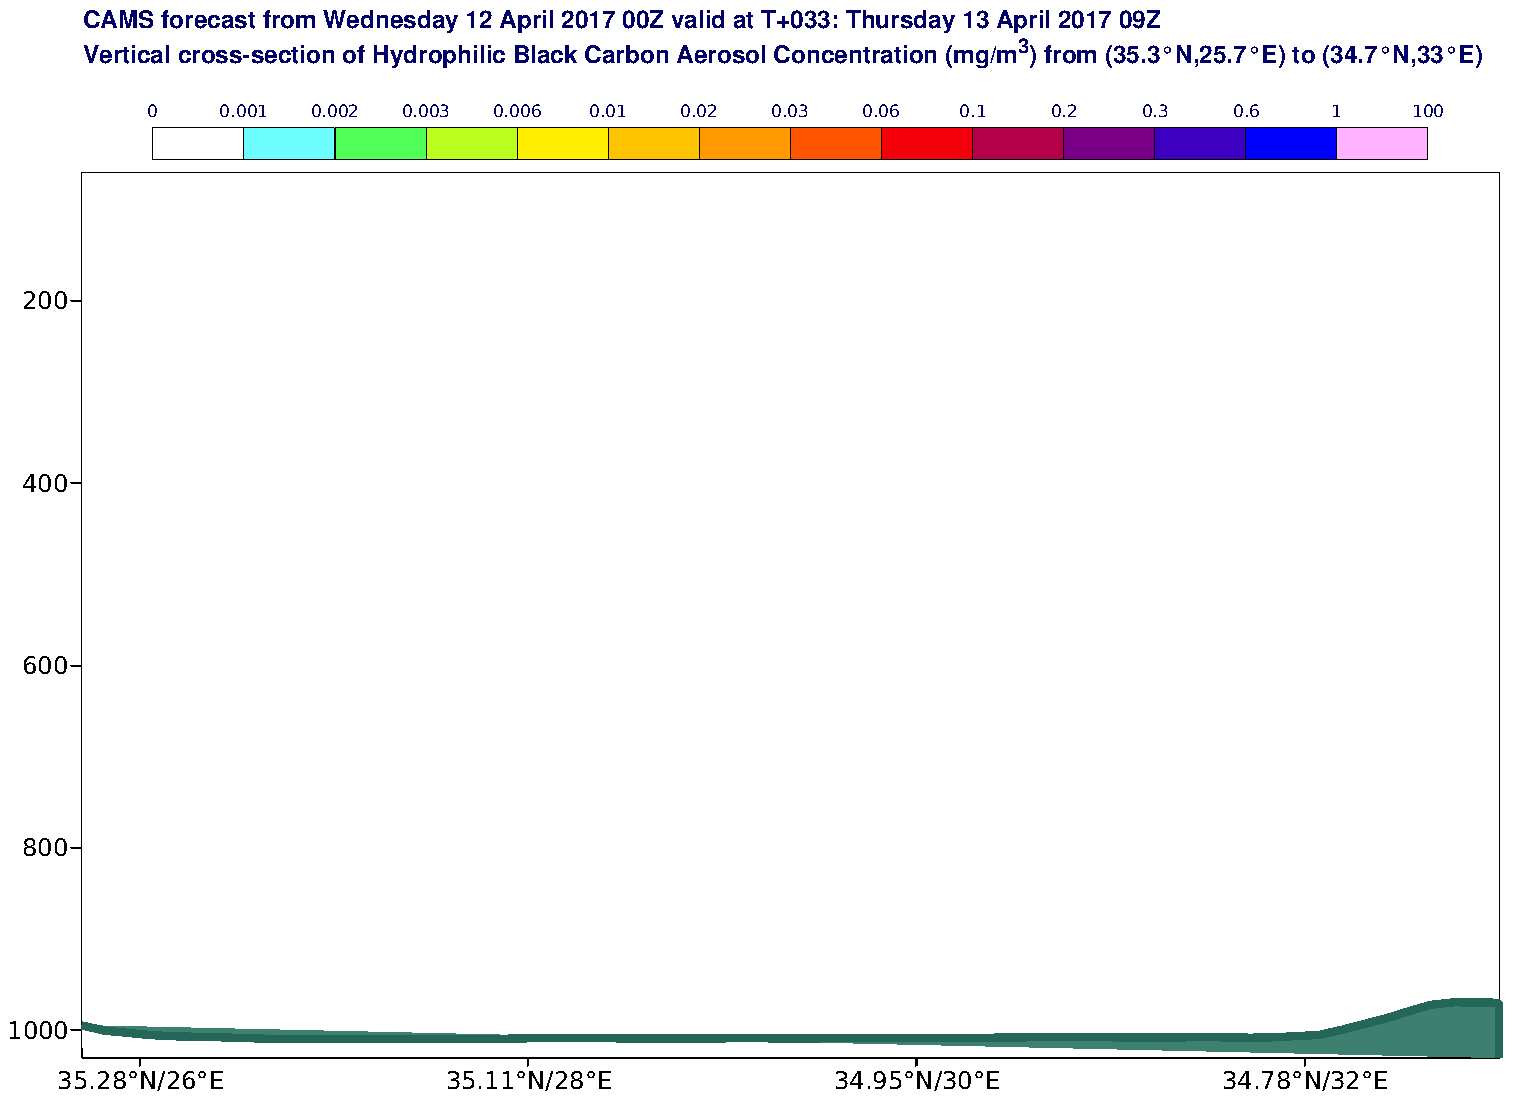 Vertical cross-section of Hydrophilic Black Carbon Aerosol Concentration (mg/m3) valid at T33 - 2017-04-13 09:00